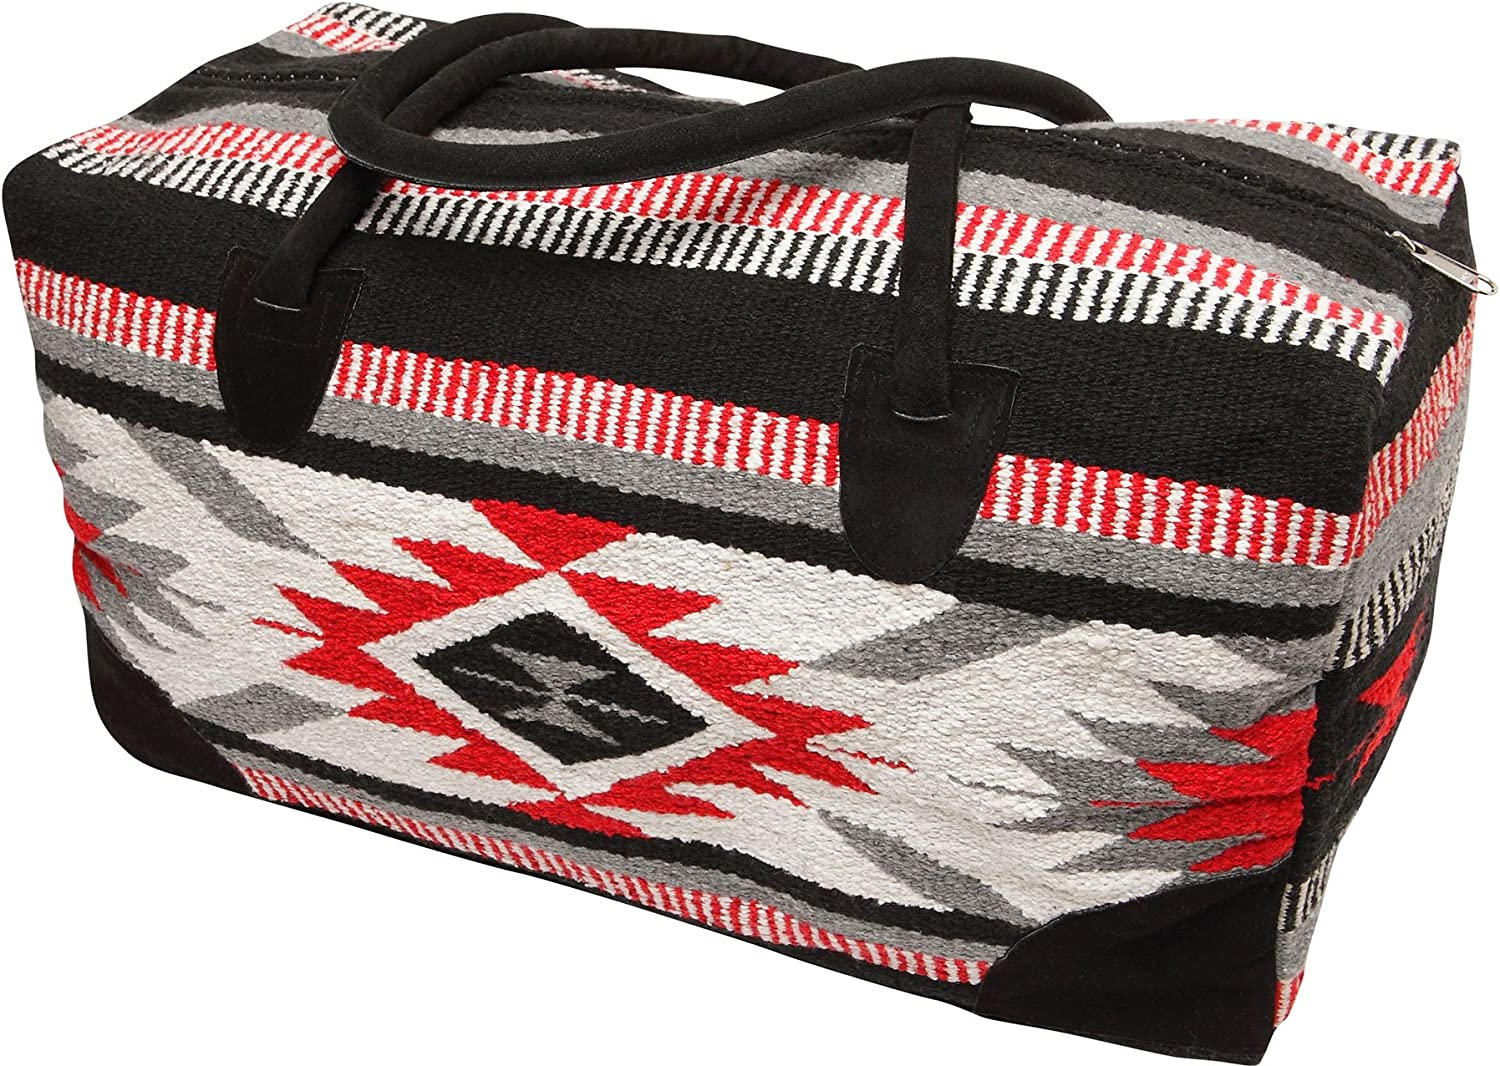 El Paso Designs Southwest Duffel Bag Camino Real Native American and Mexican Style Jumbo Large Travel Bags Cancun